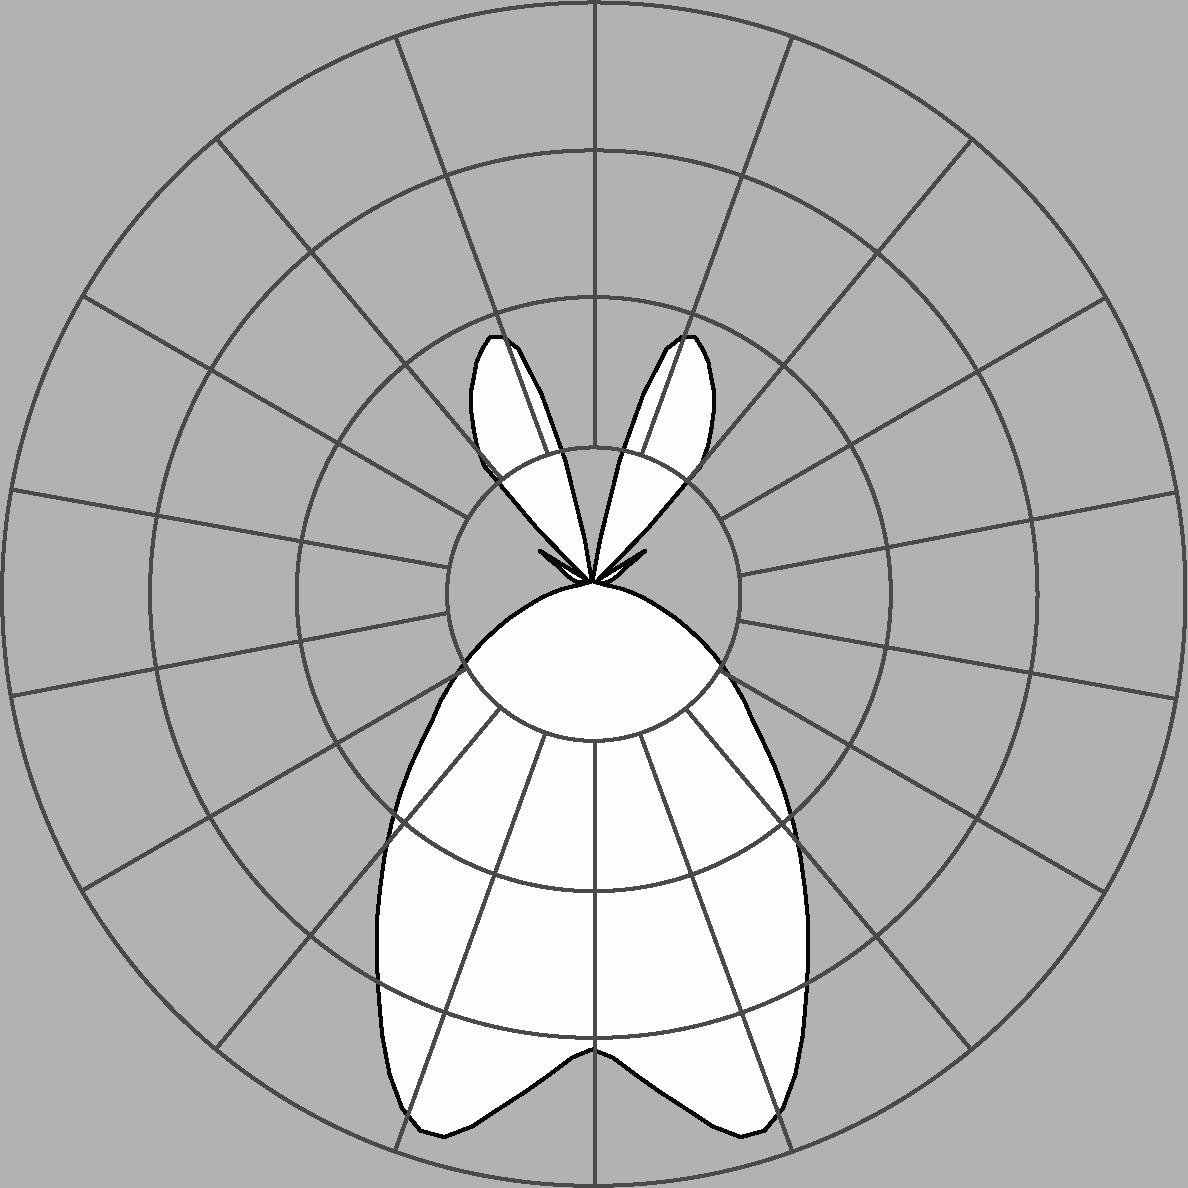 Cool Polar Graph Designs Pictures to Pin on Pinterest